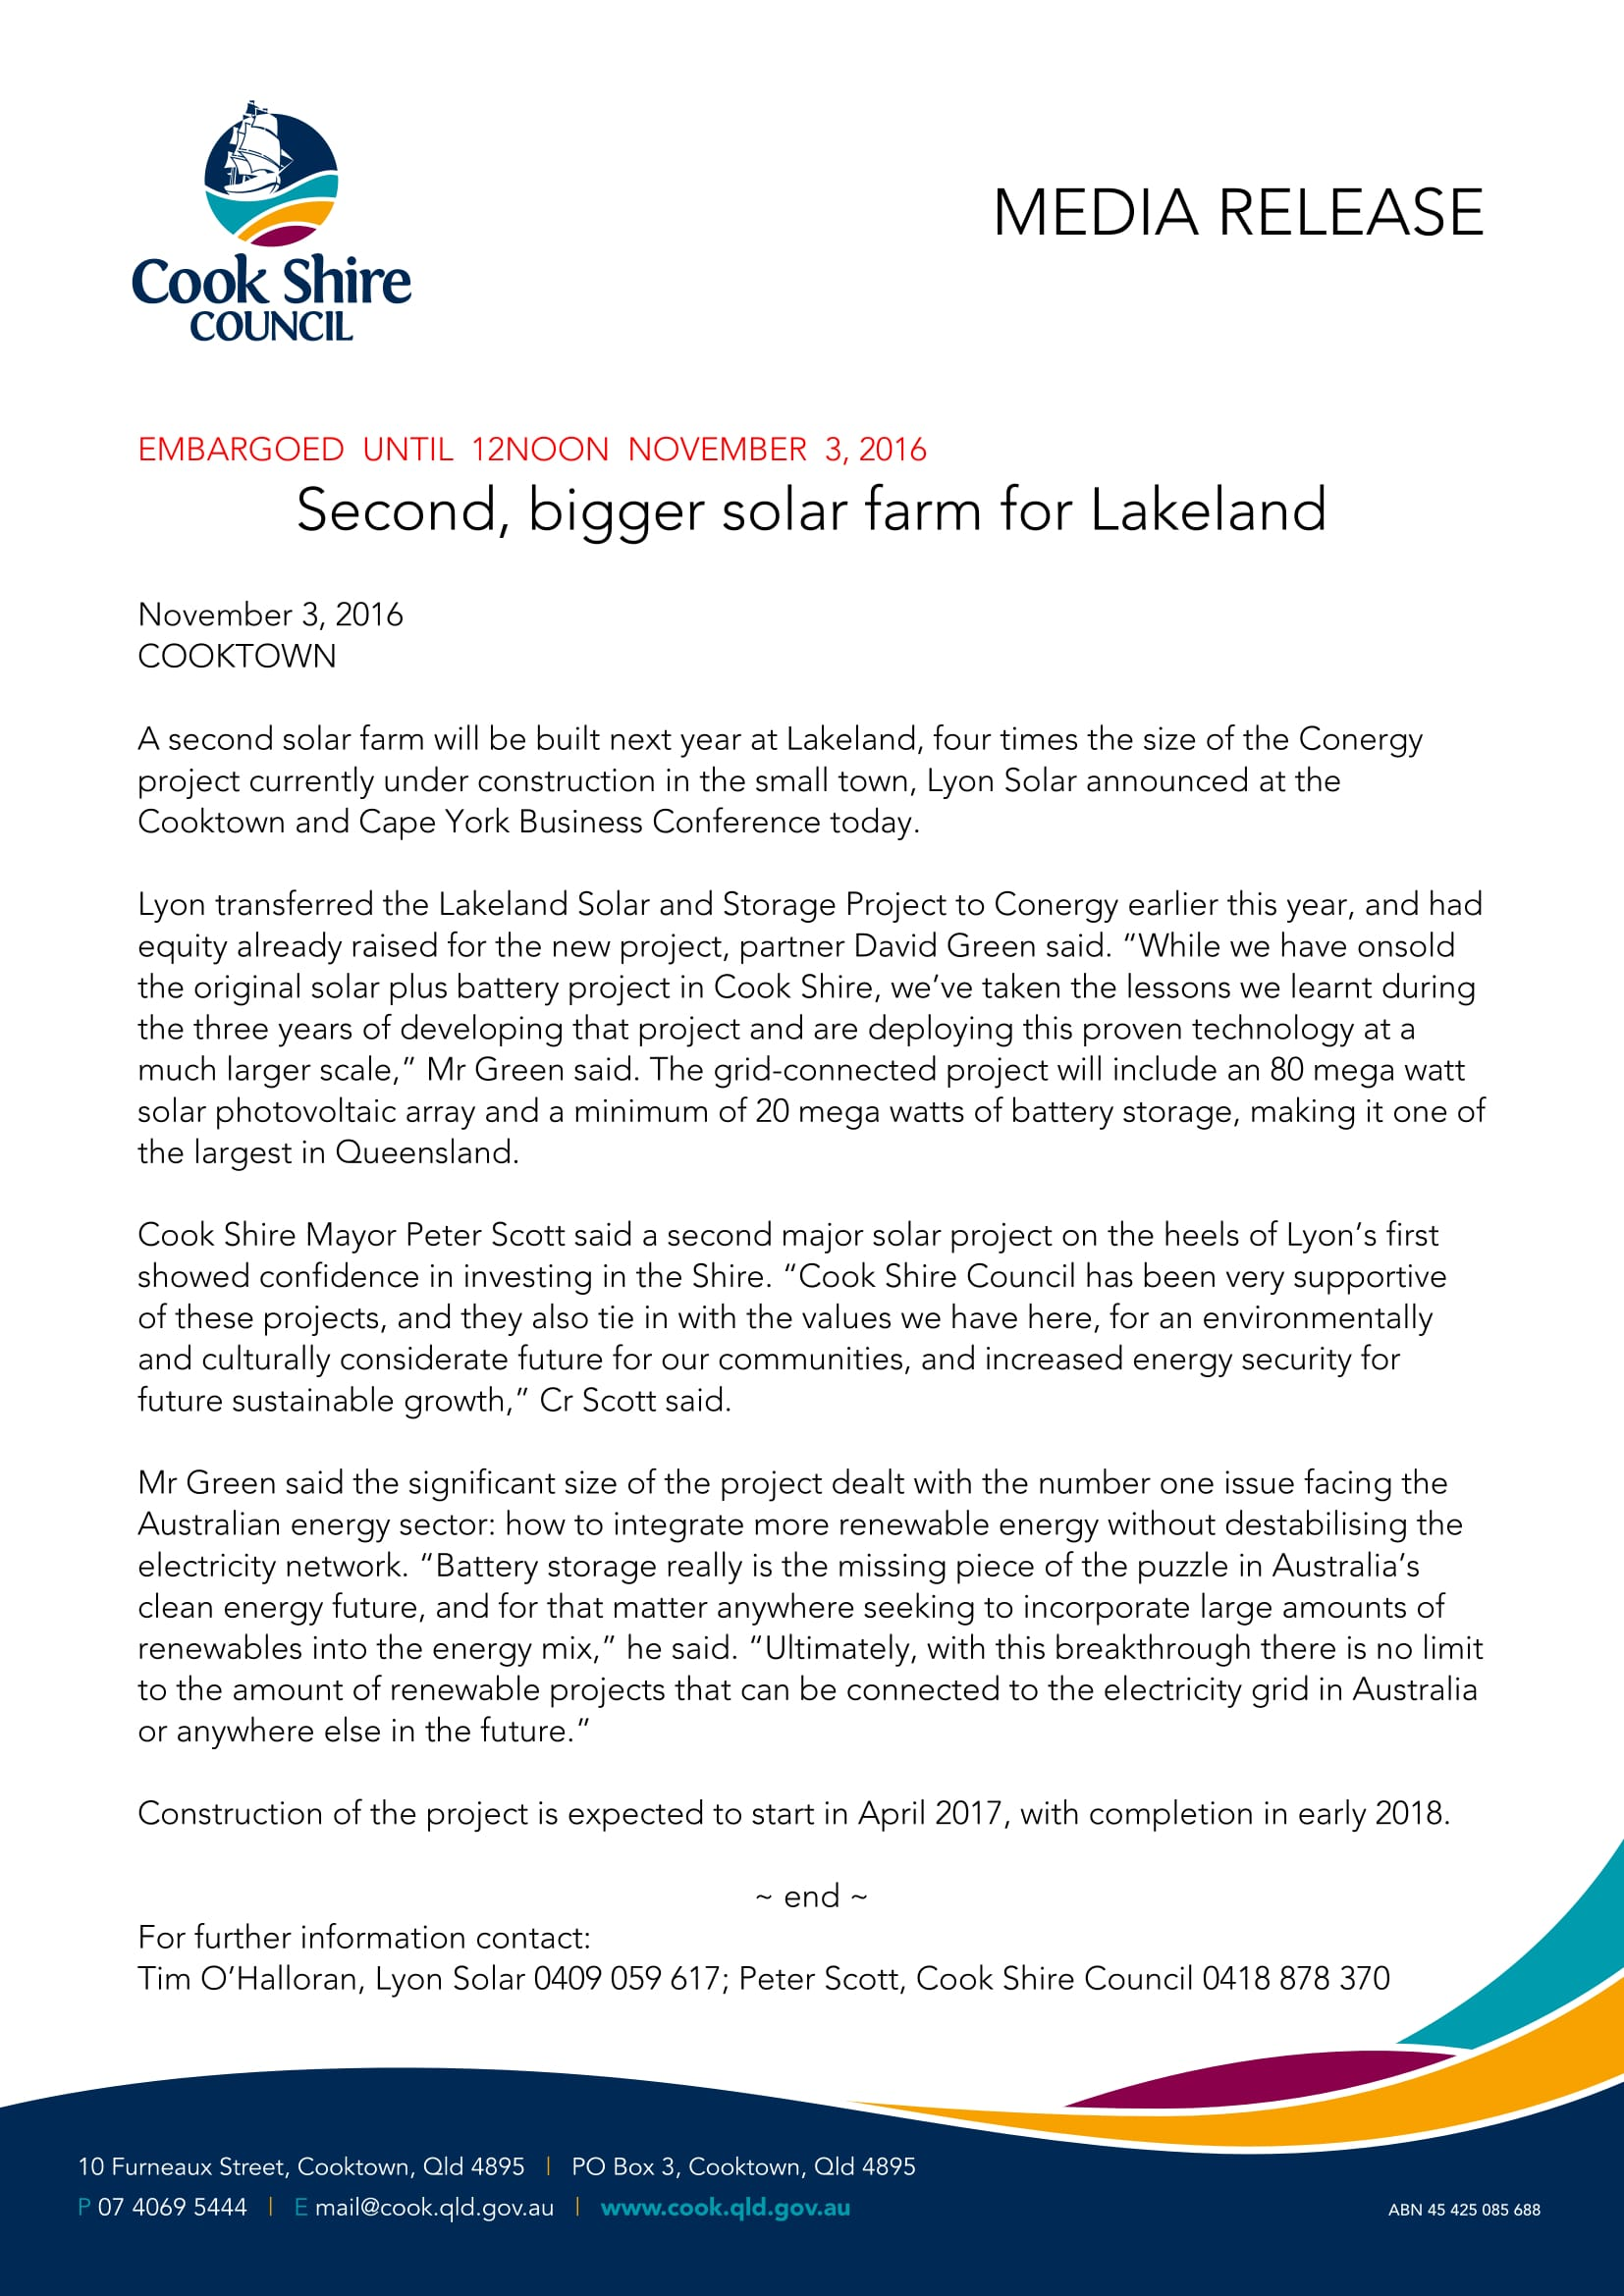 Media Release - Lyon announces second solar plus battery project at Lakeland